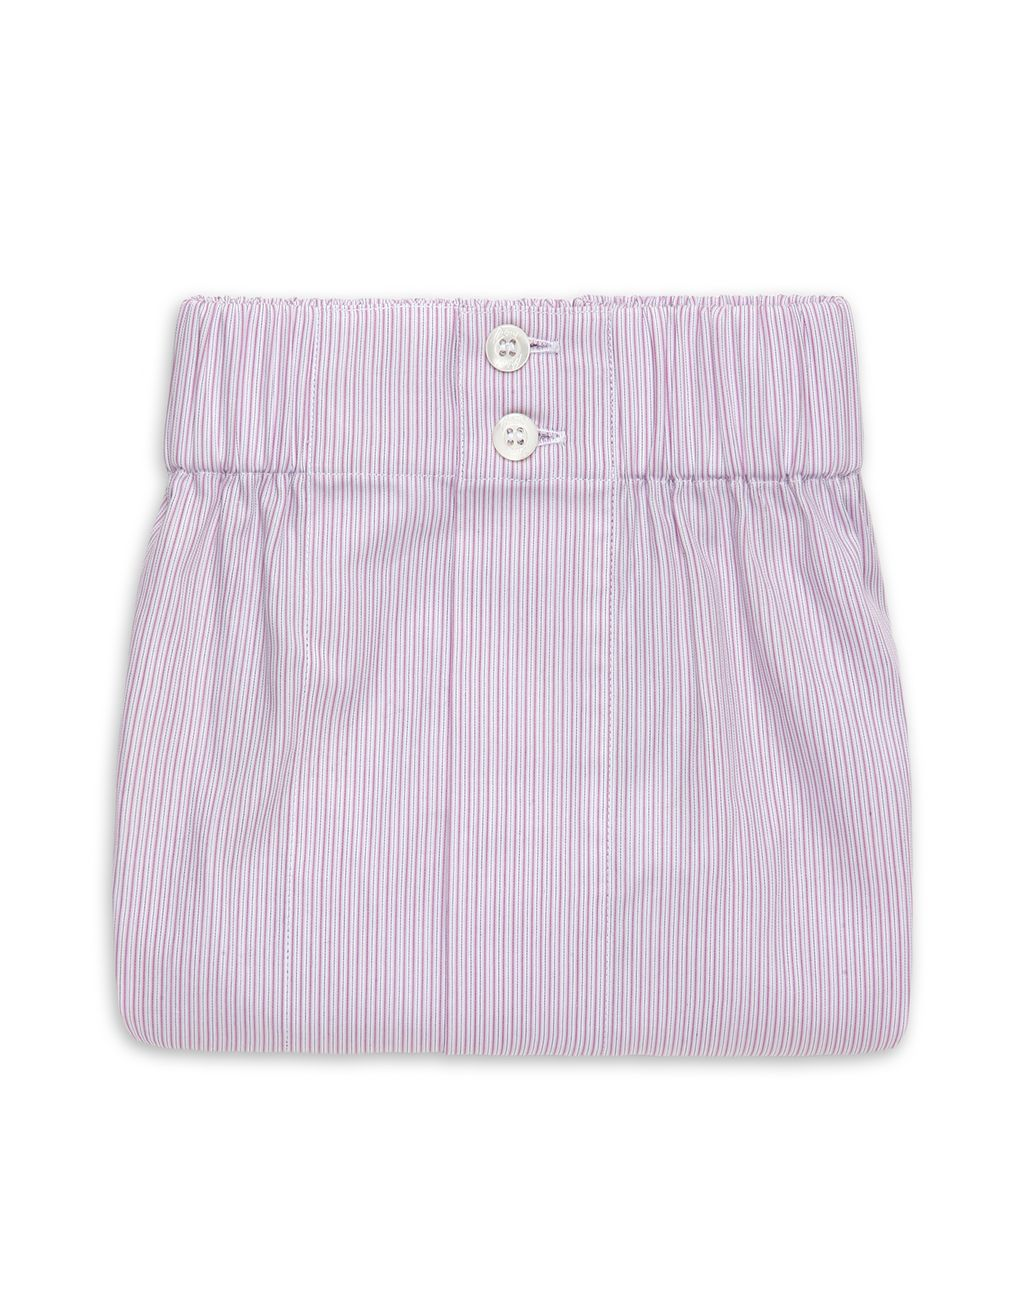 BRIONI Liliac and White Pinstriped Underwear Underwear Man r